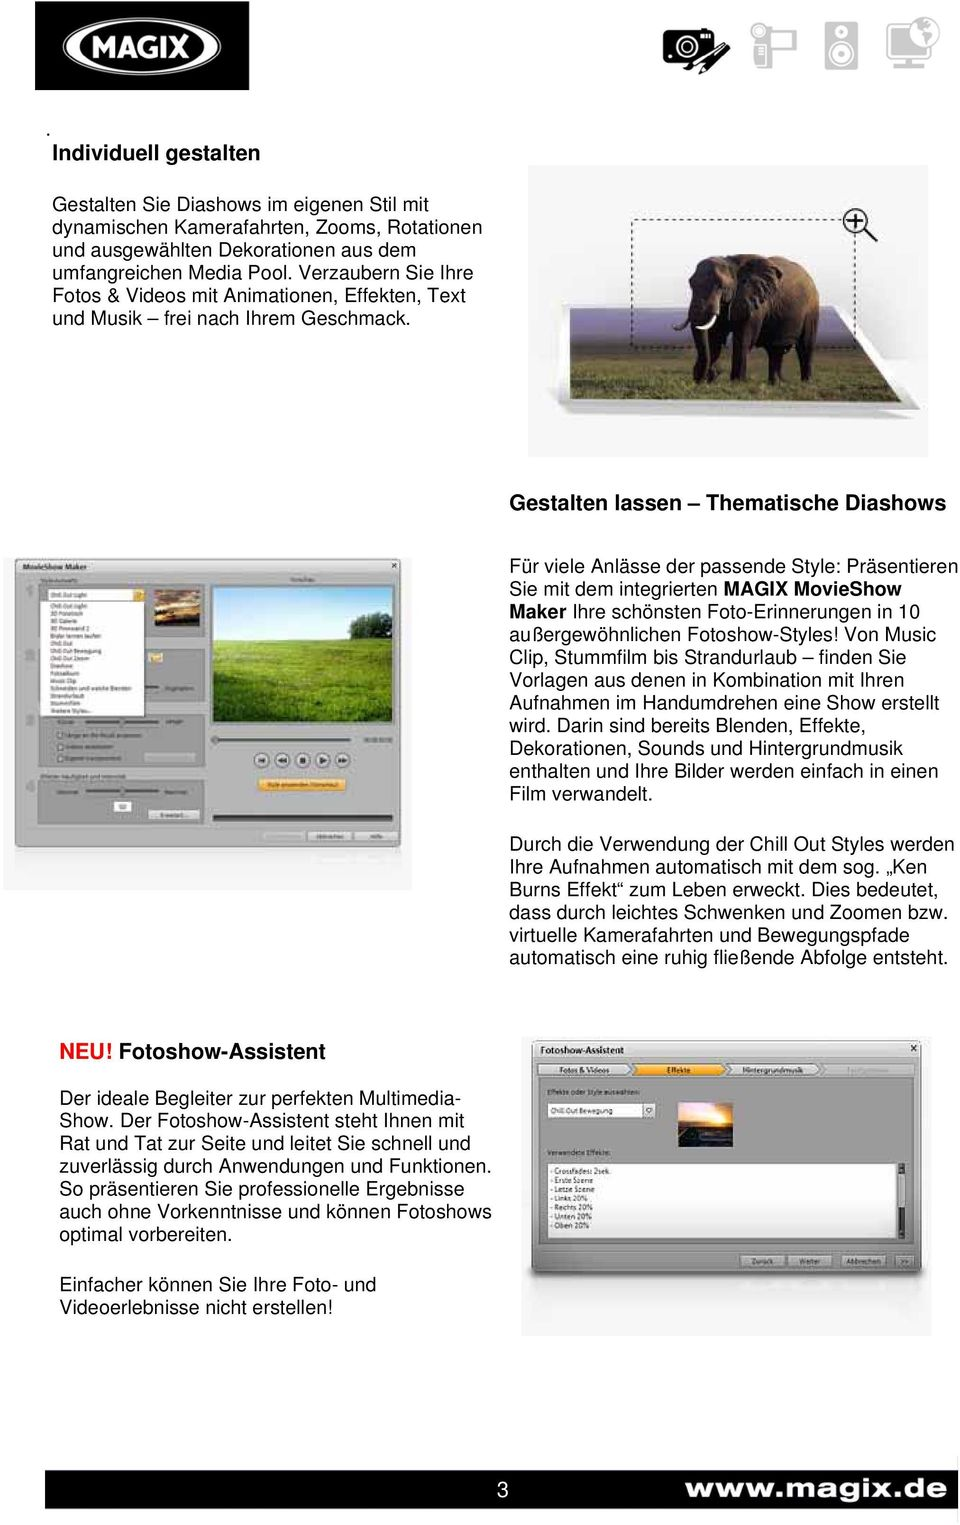 Fantastisch Nach Effekt Diashow Vorlage Bilder - Entry Level Resume ...